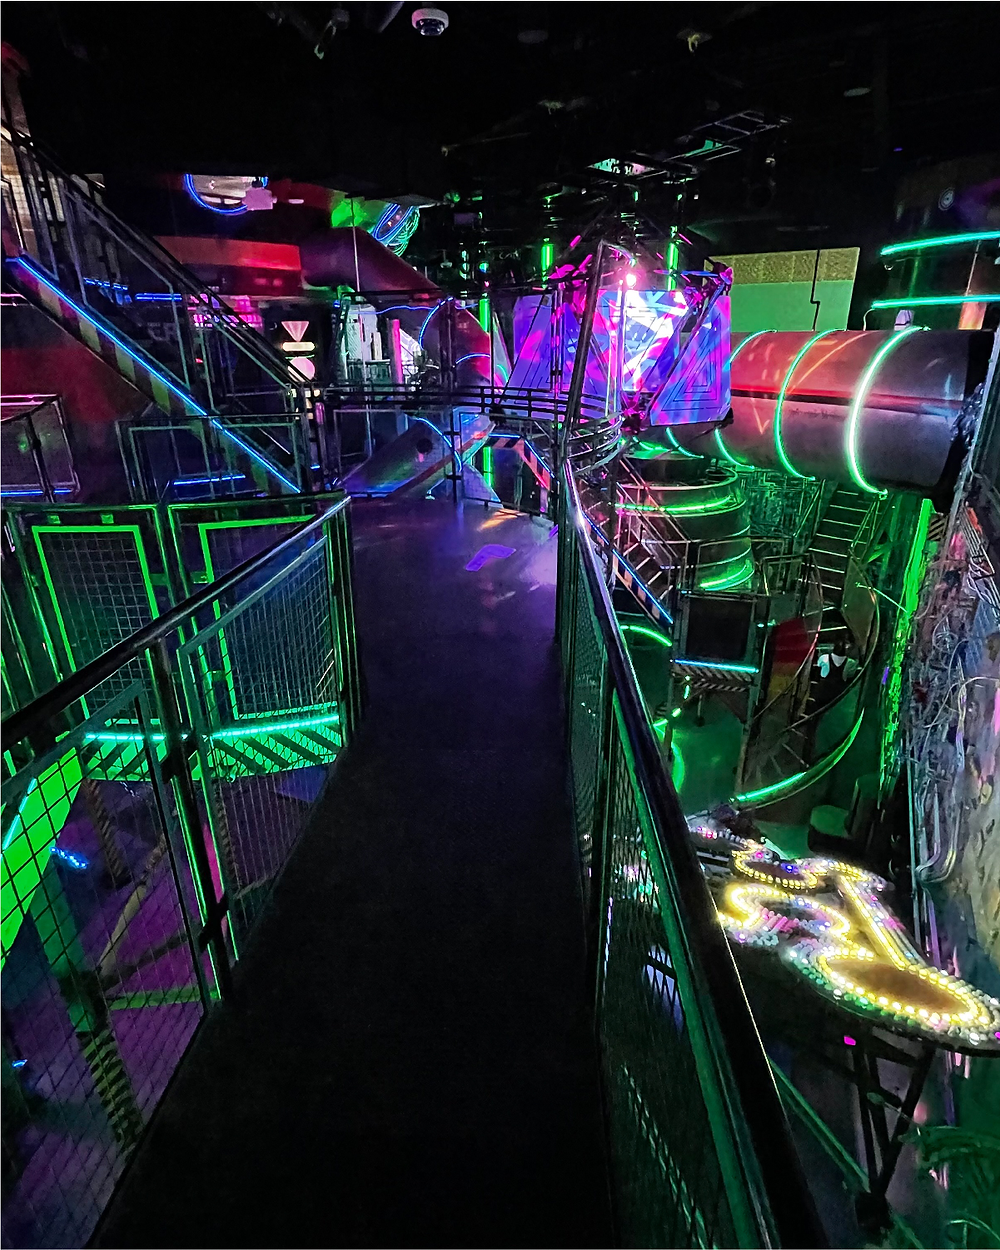 At Omega Mart Las Vegas, double helix slides and several levels of stairs wind around one another; green lighting irradiates it all as immersive adventure lurks around every corner.